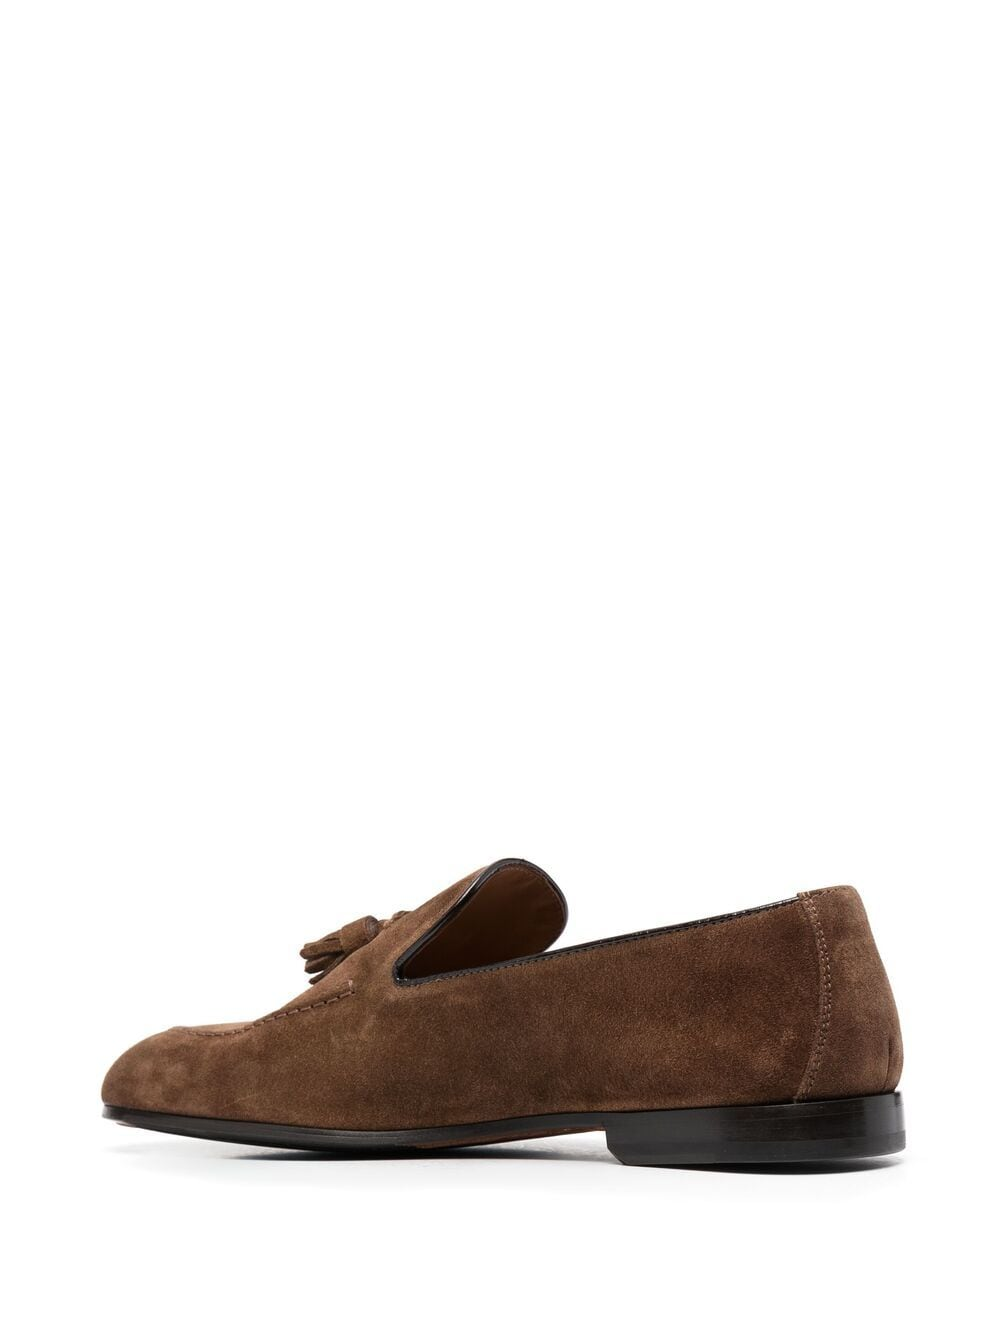 DOUCAL'S Man Loafer With Tassels In Brown Suede